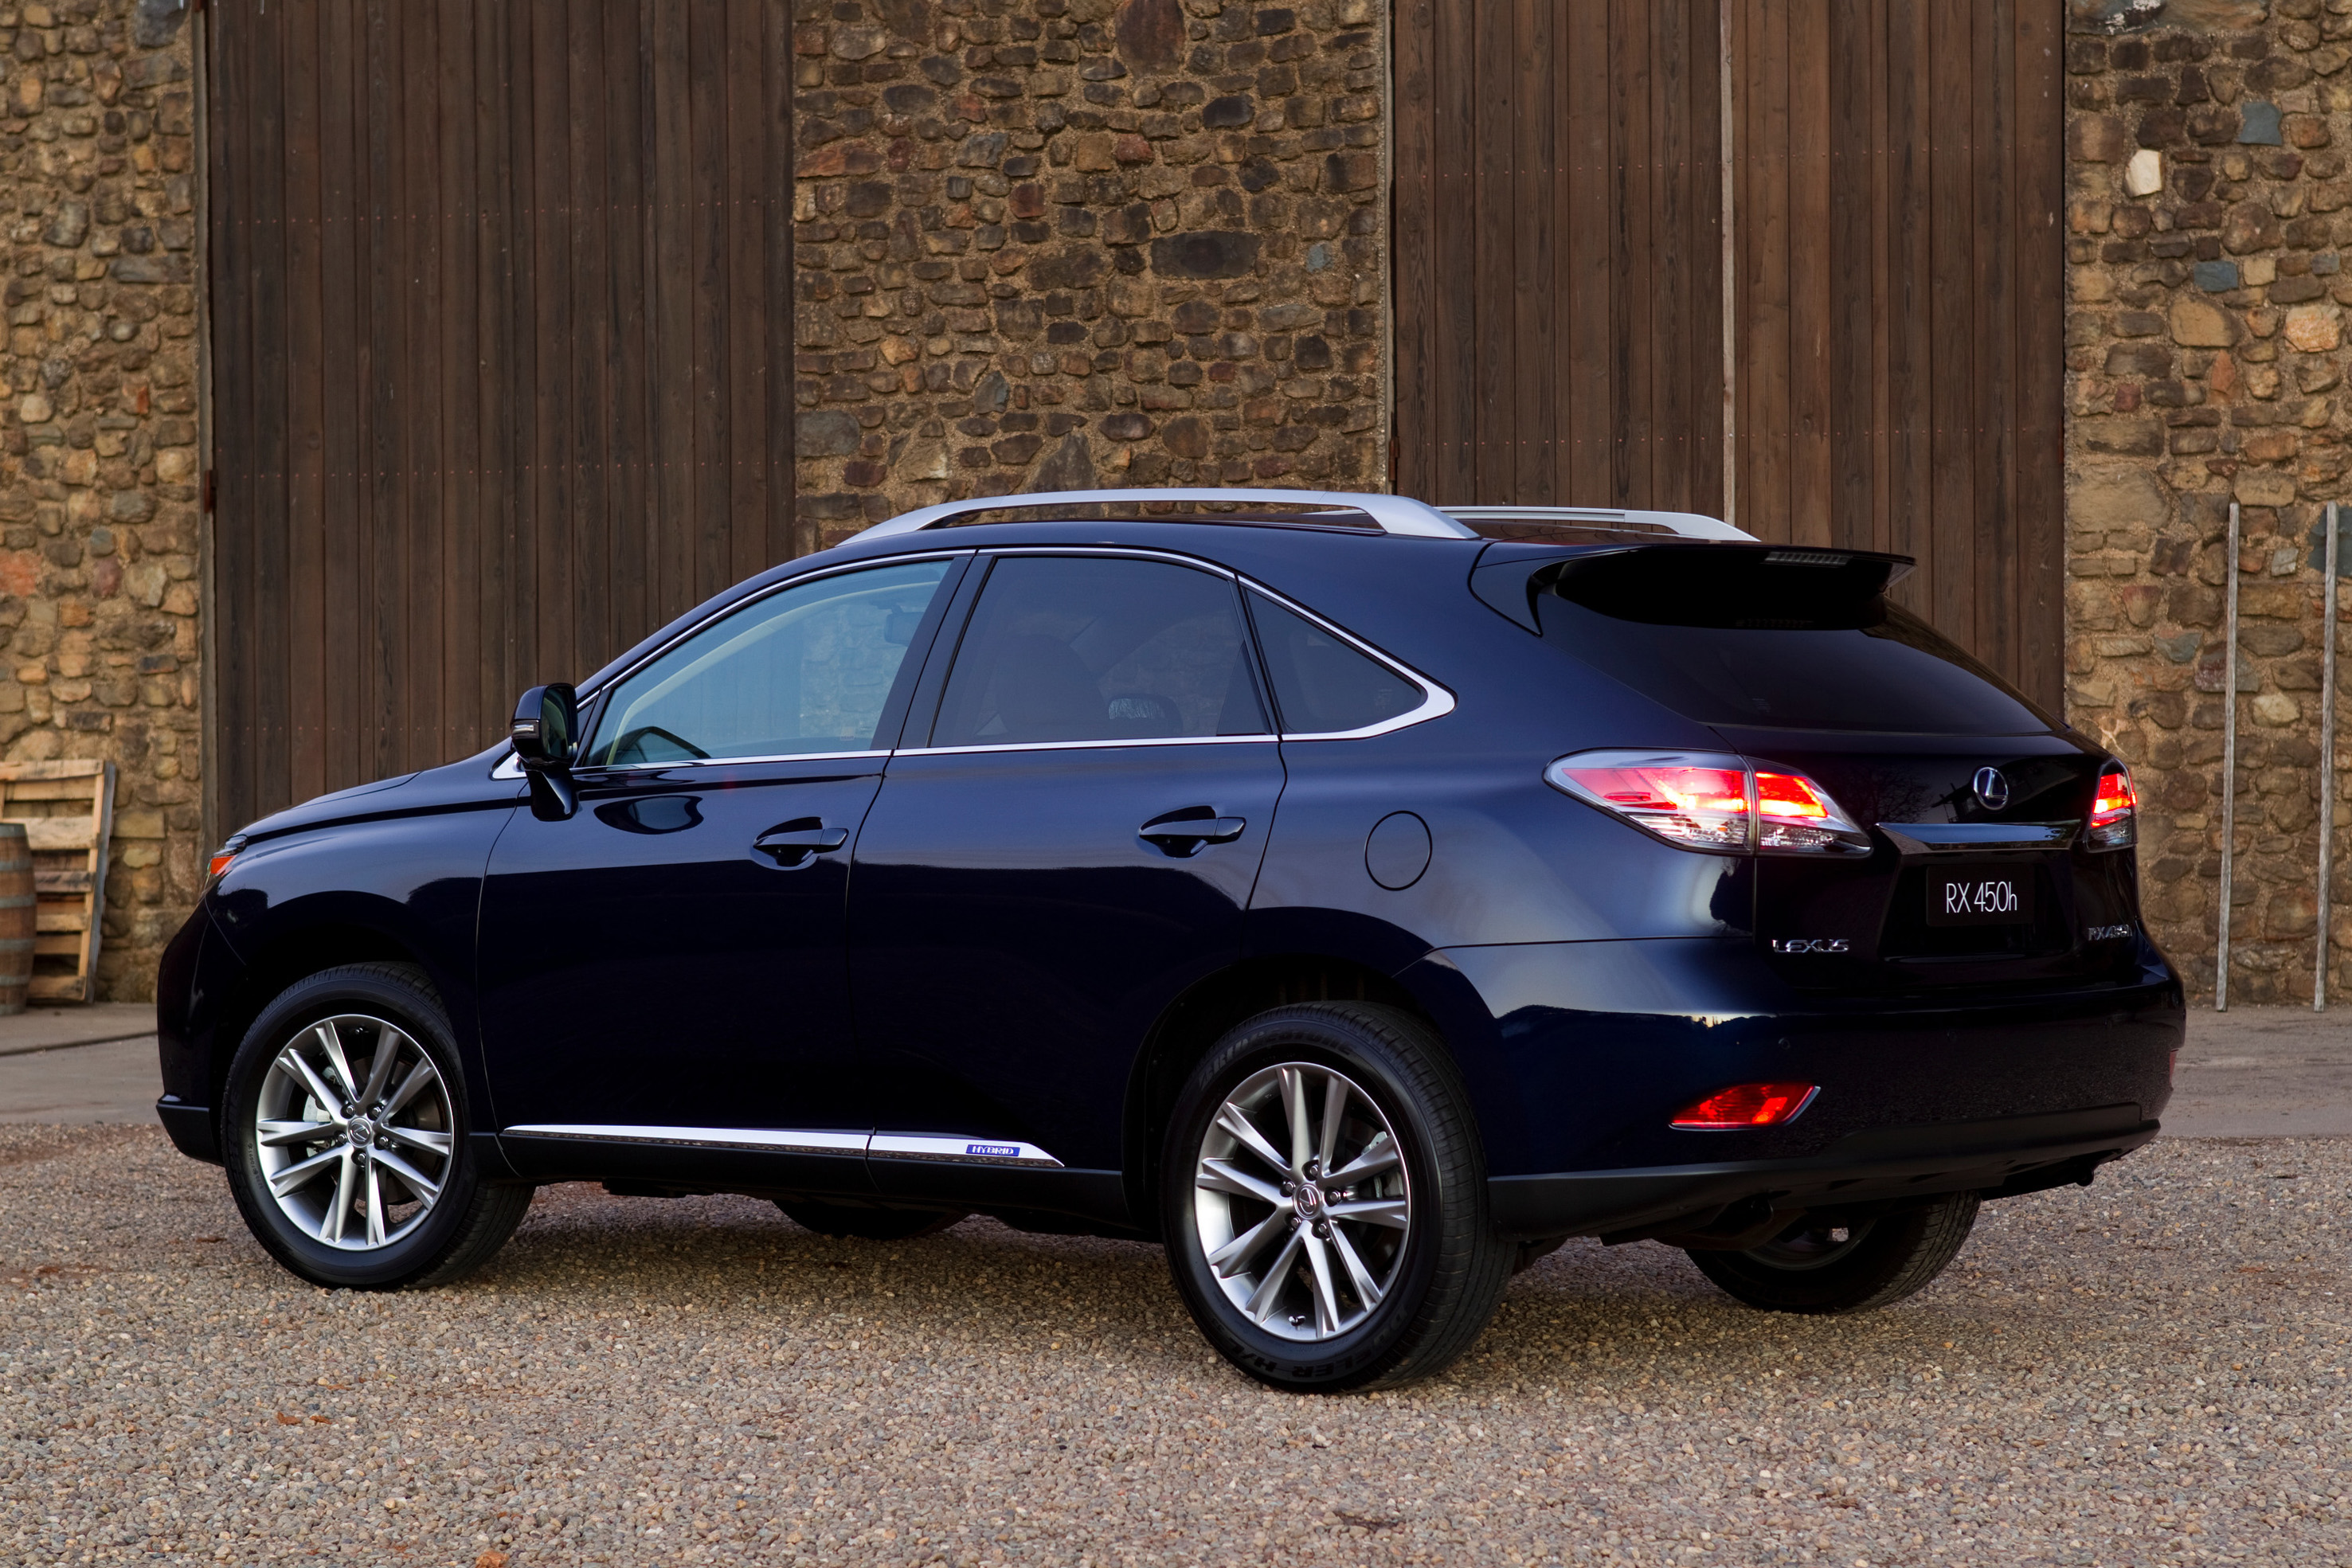 2019 Lexus RX 450h photo - 6